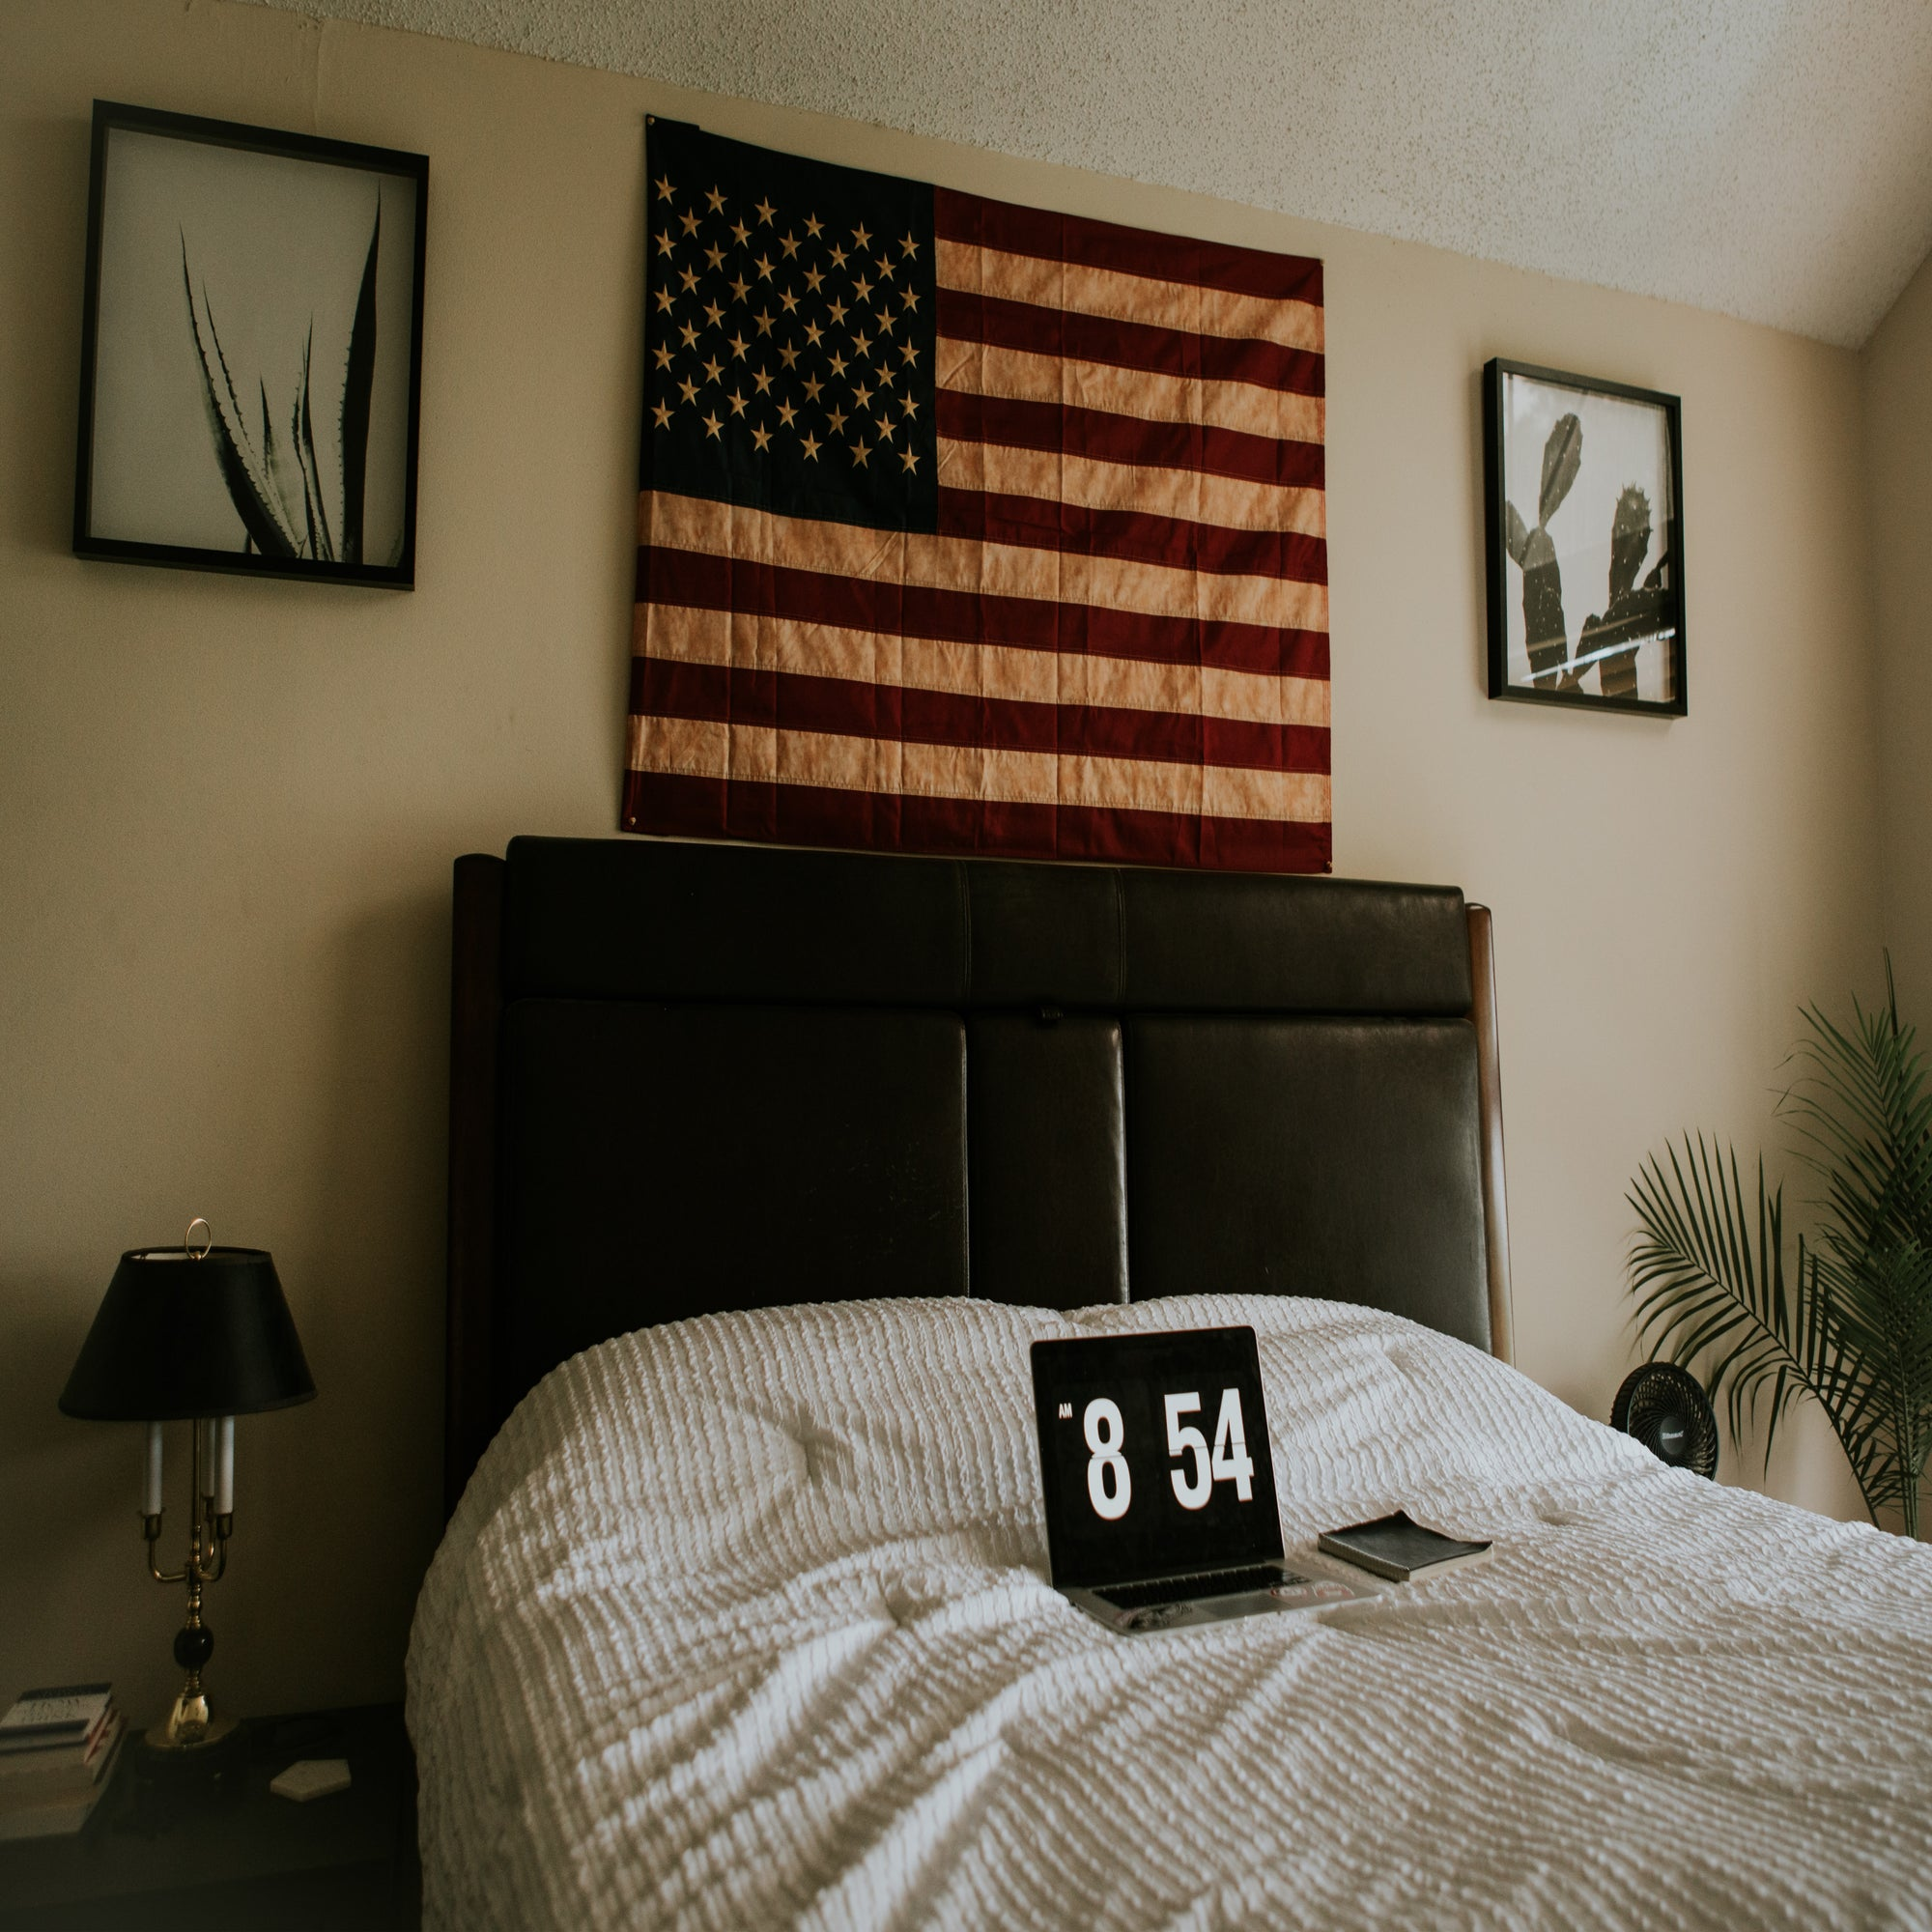 How to Decorate Your Bedroom With Flags